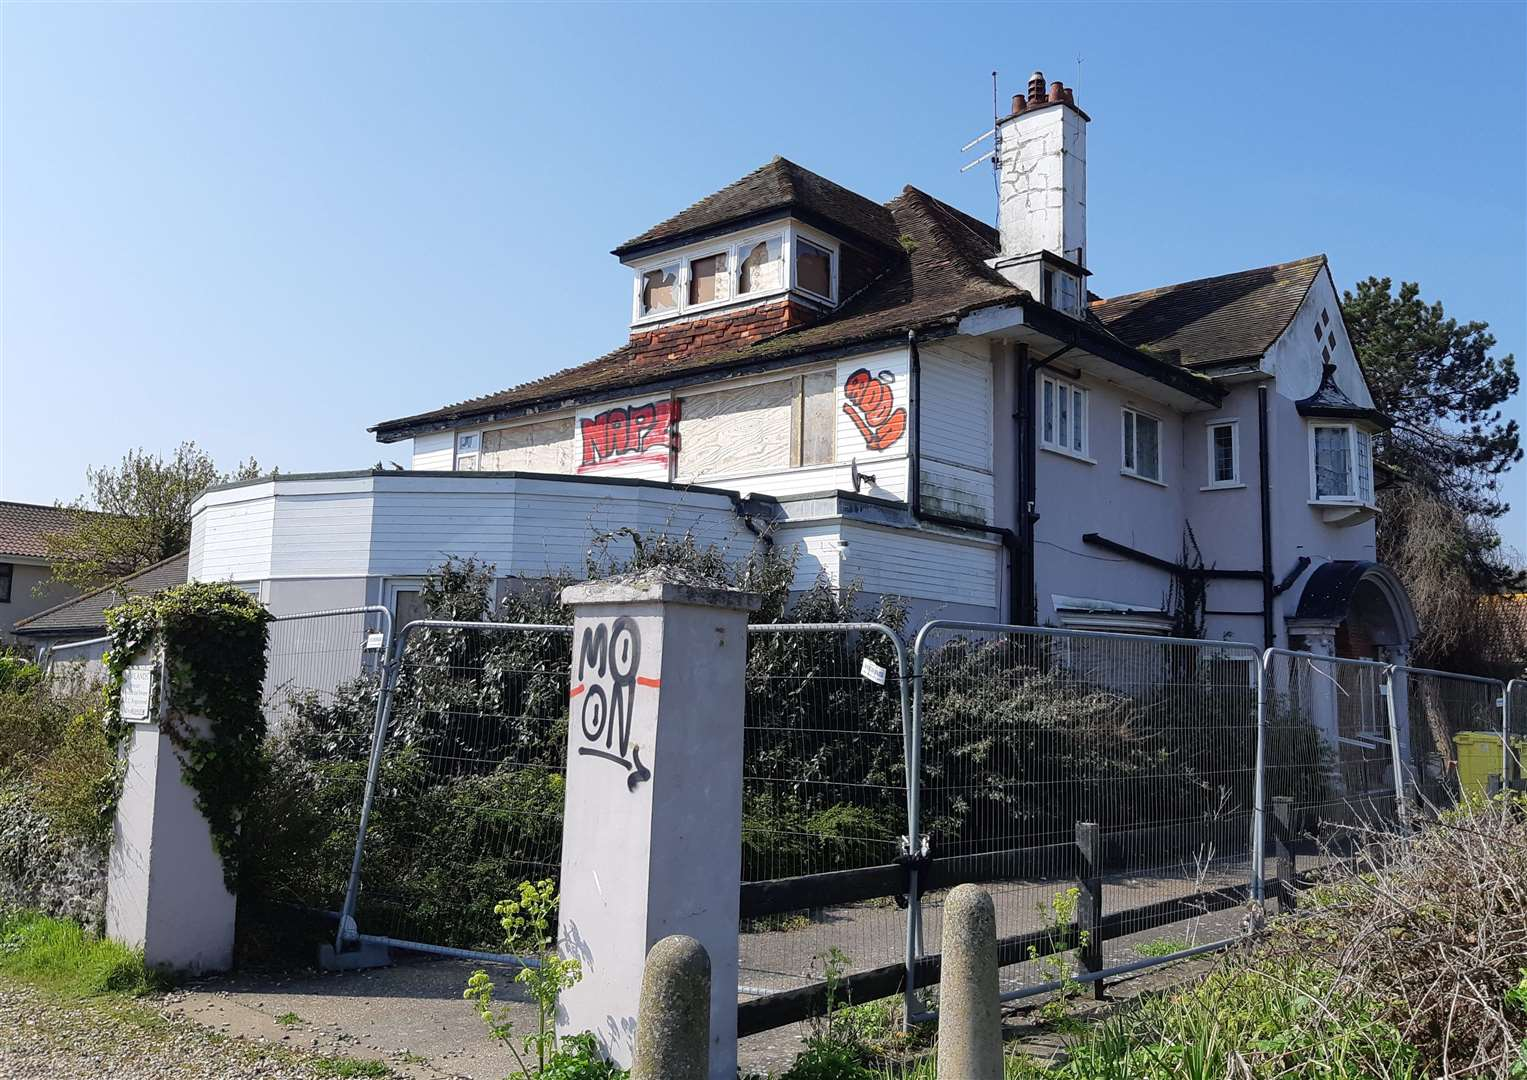 Newlands residential home in Walmer, which closed in 2016, could be demolished to make way for six flats